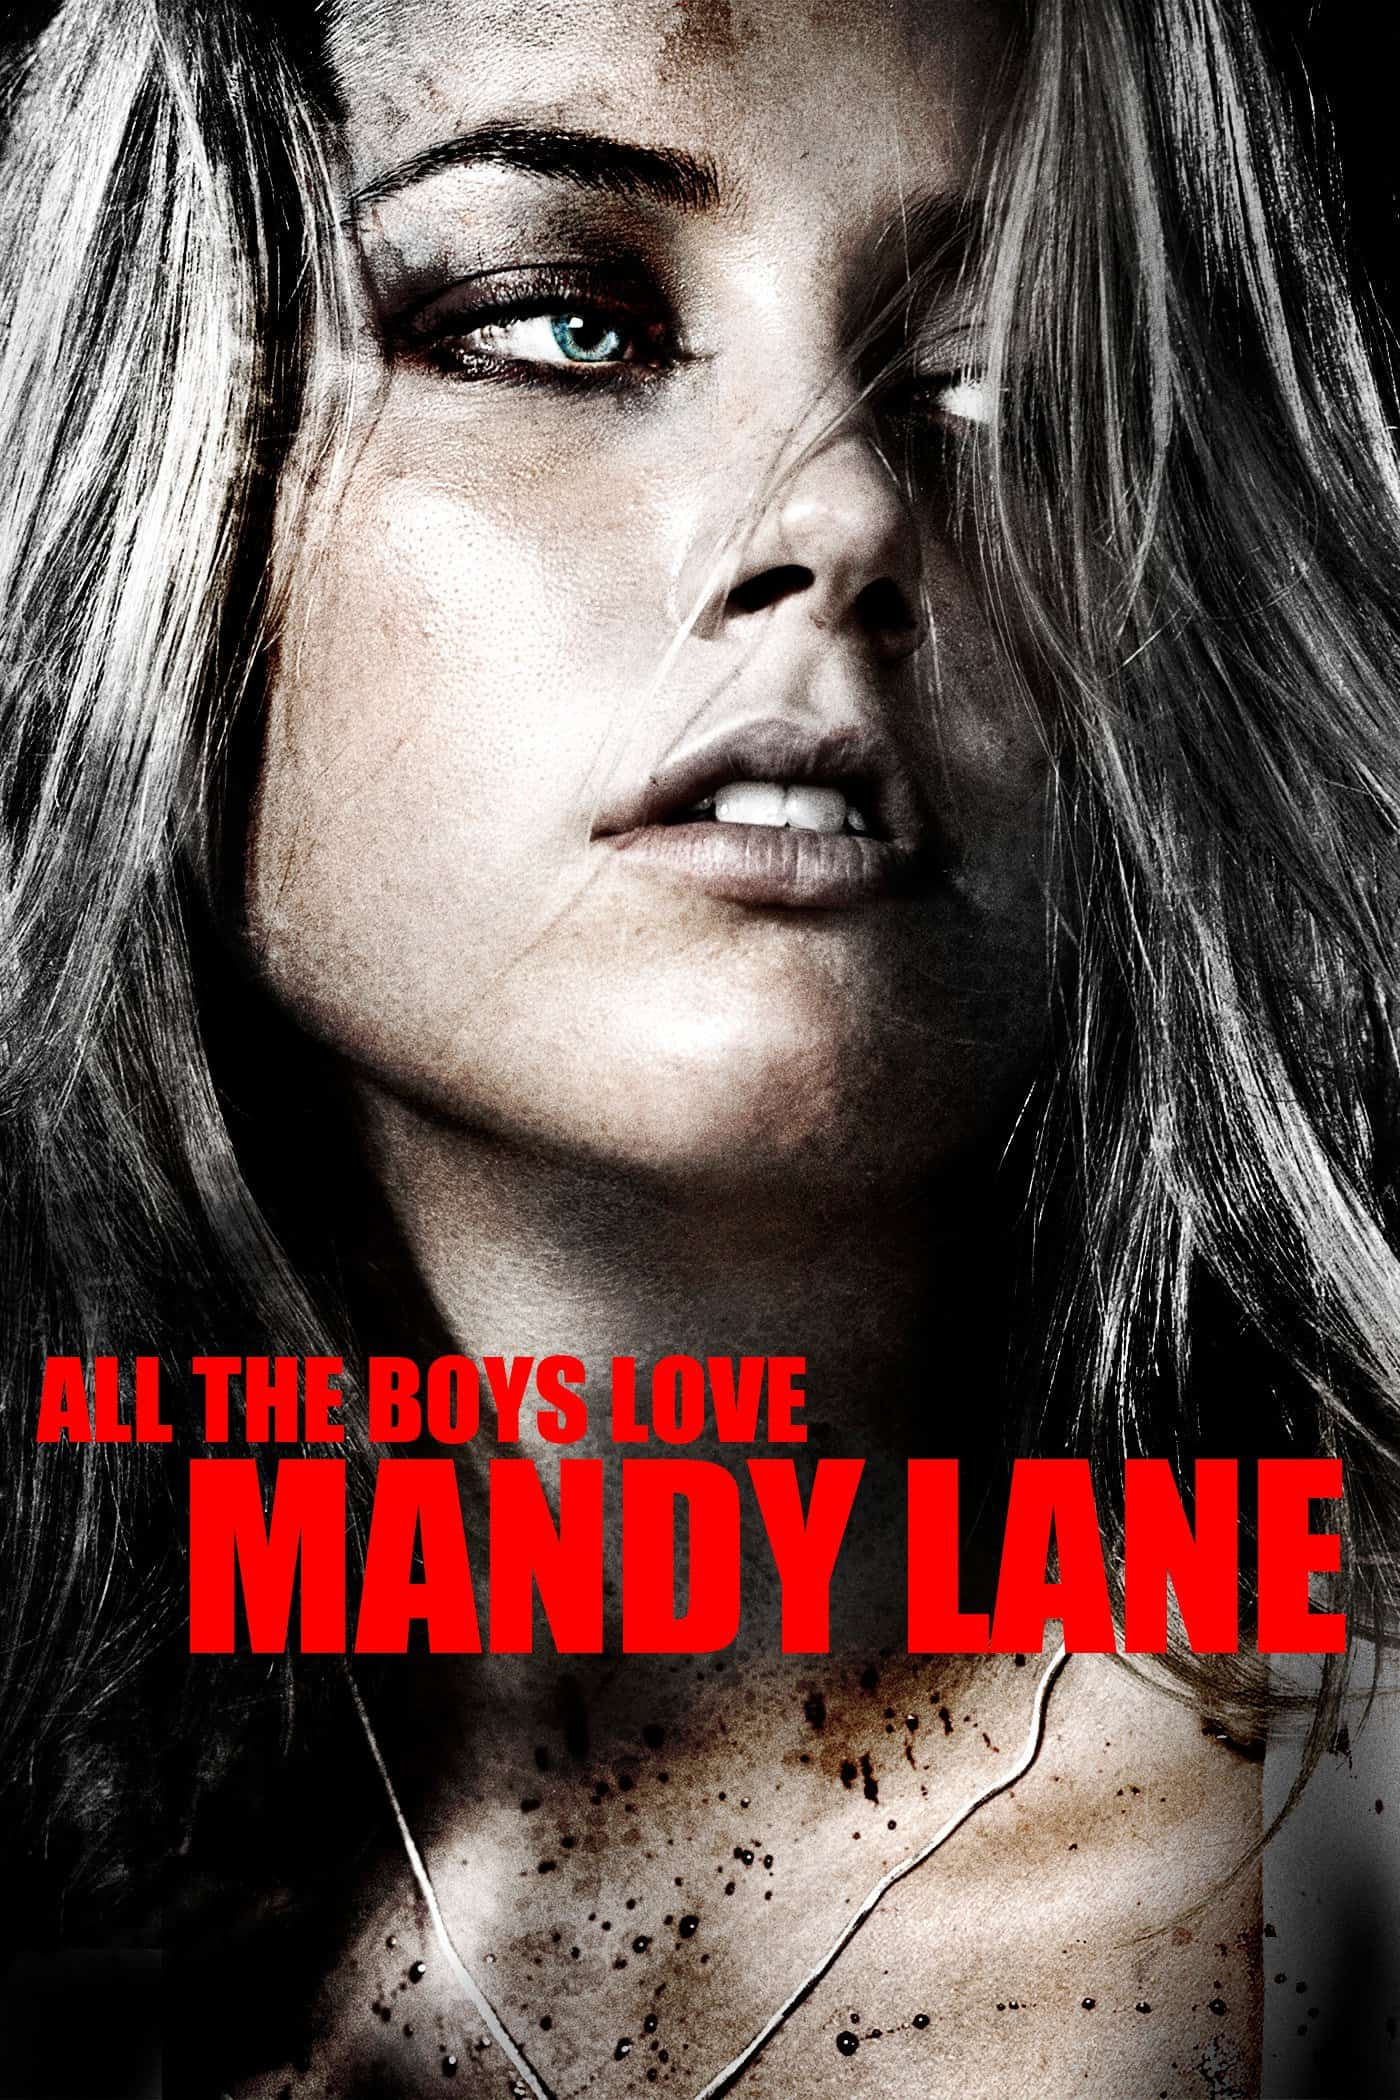 All the Boys Love Mandy Lane, 2006